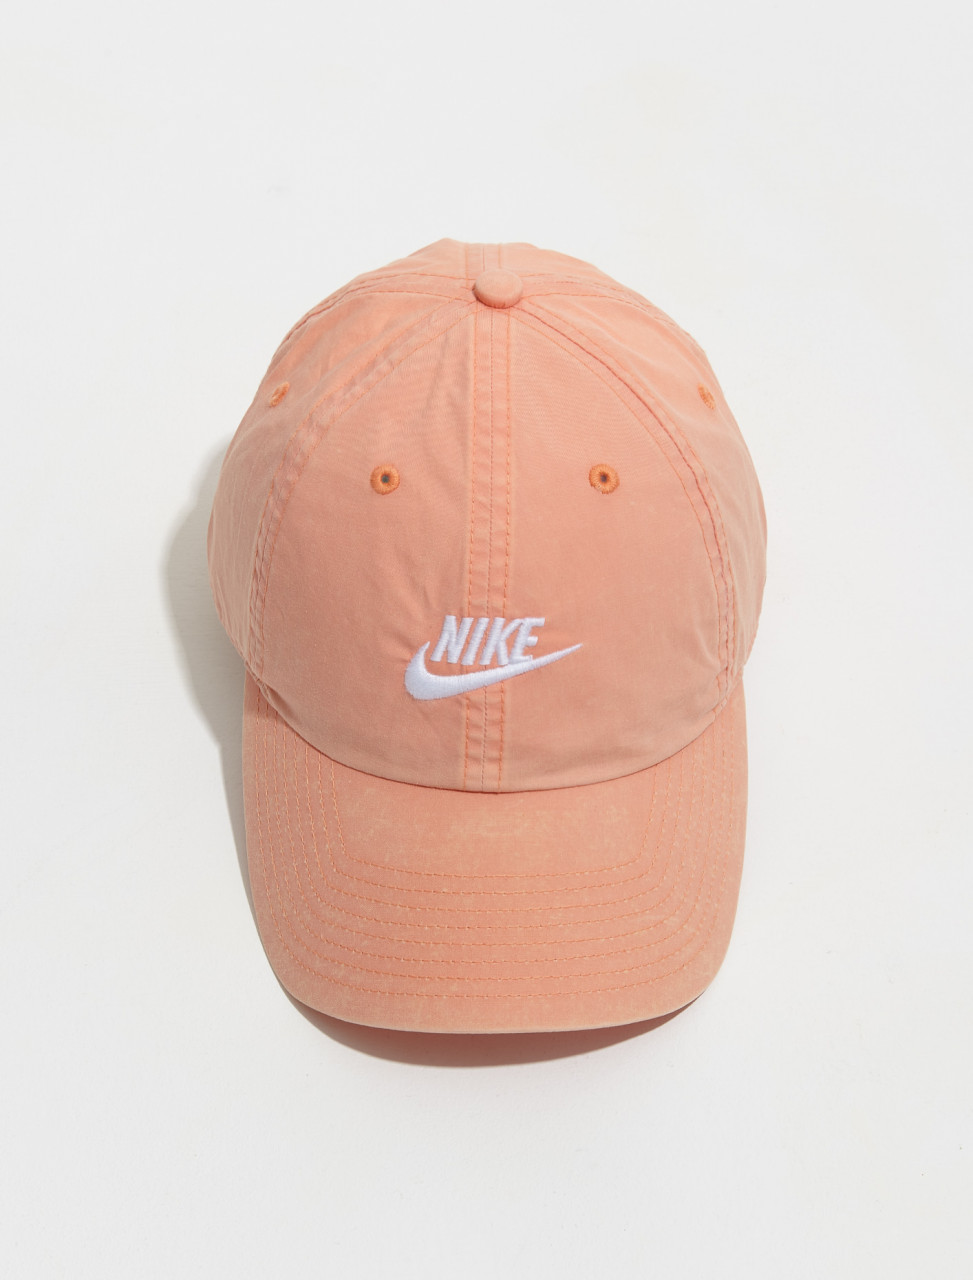 DH2424 808 NIKE HERITAGE 86 CAP IN APRICOT AGATE